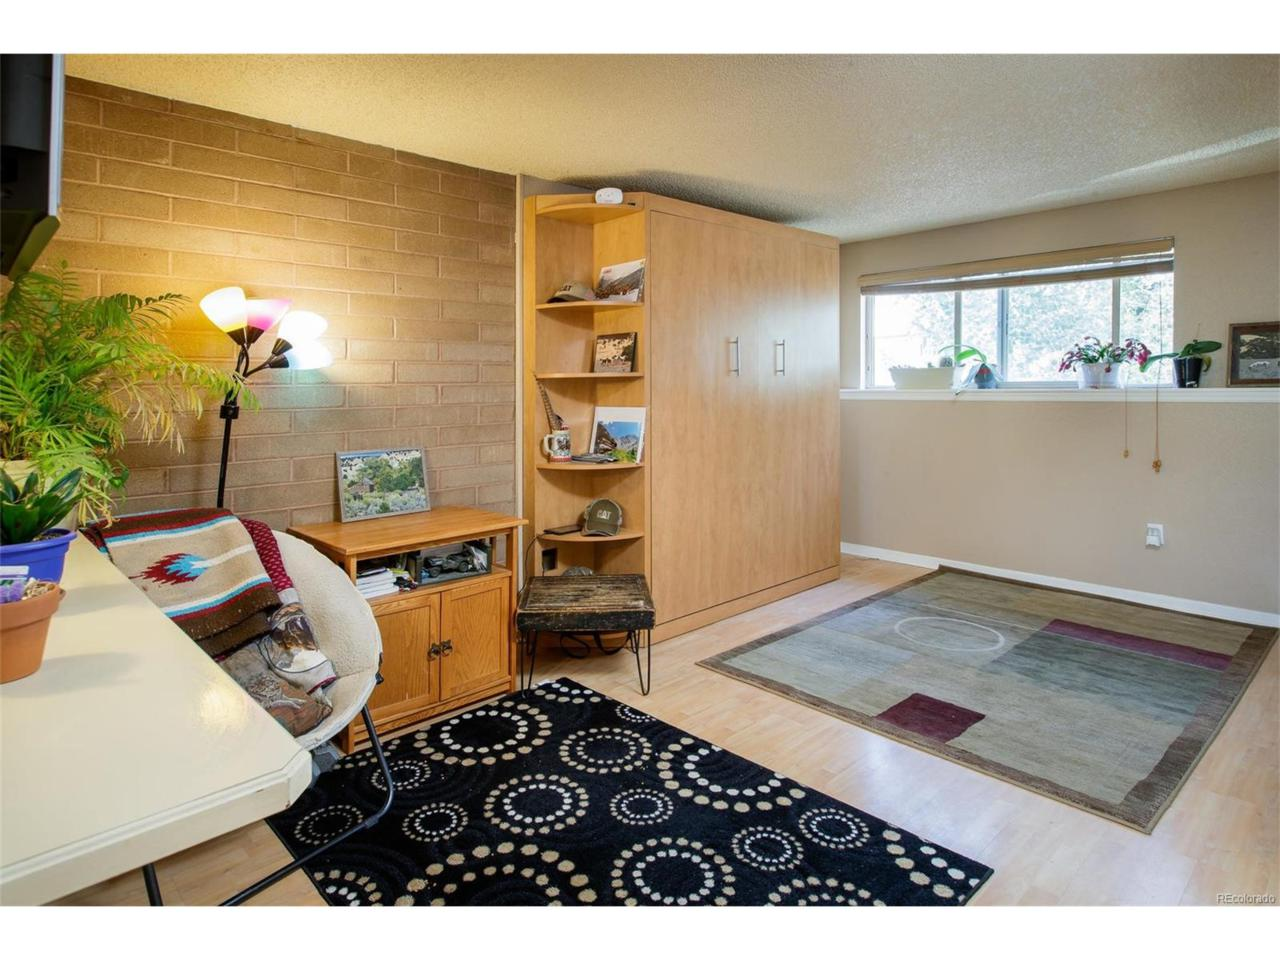 781 Rainbow Drive 781I, Silverthorne, CO 80498 (MLS #8298984) :: 8z Real Estate